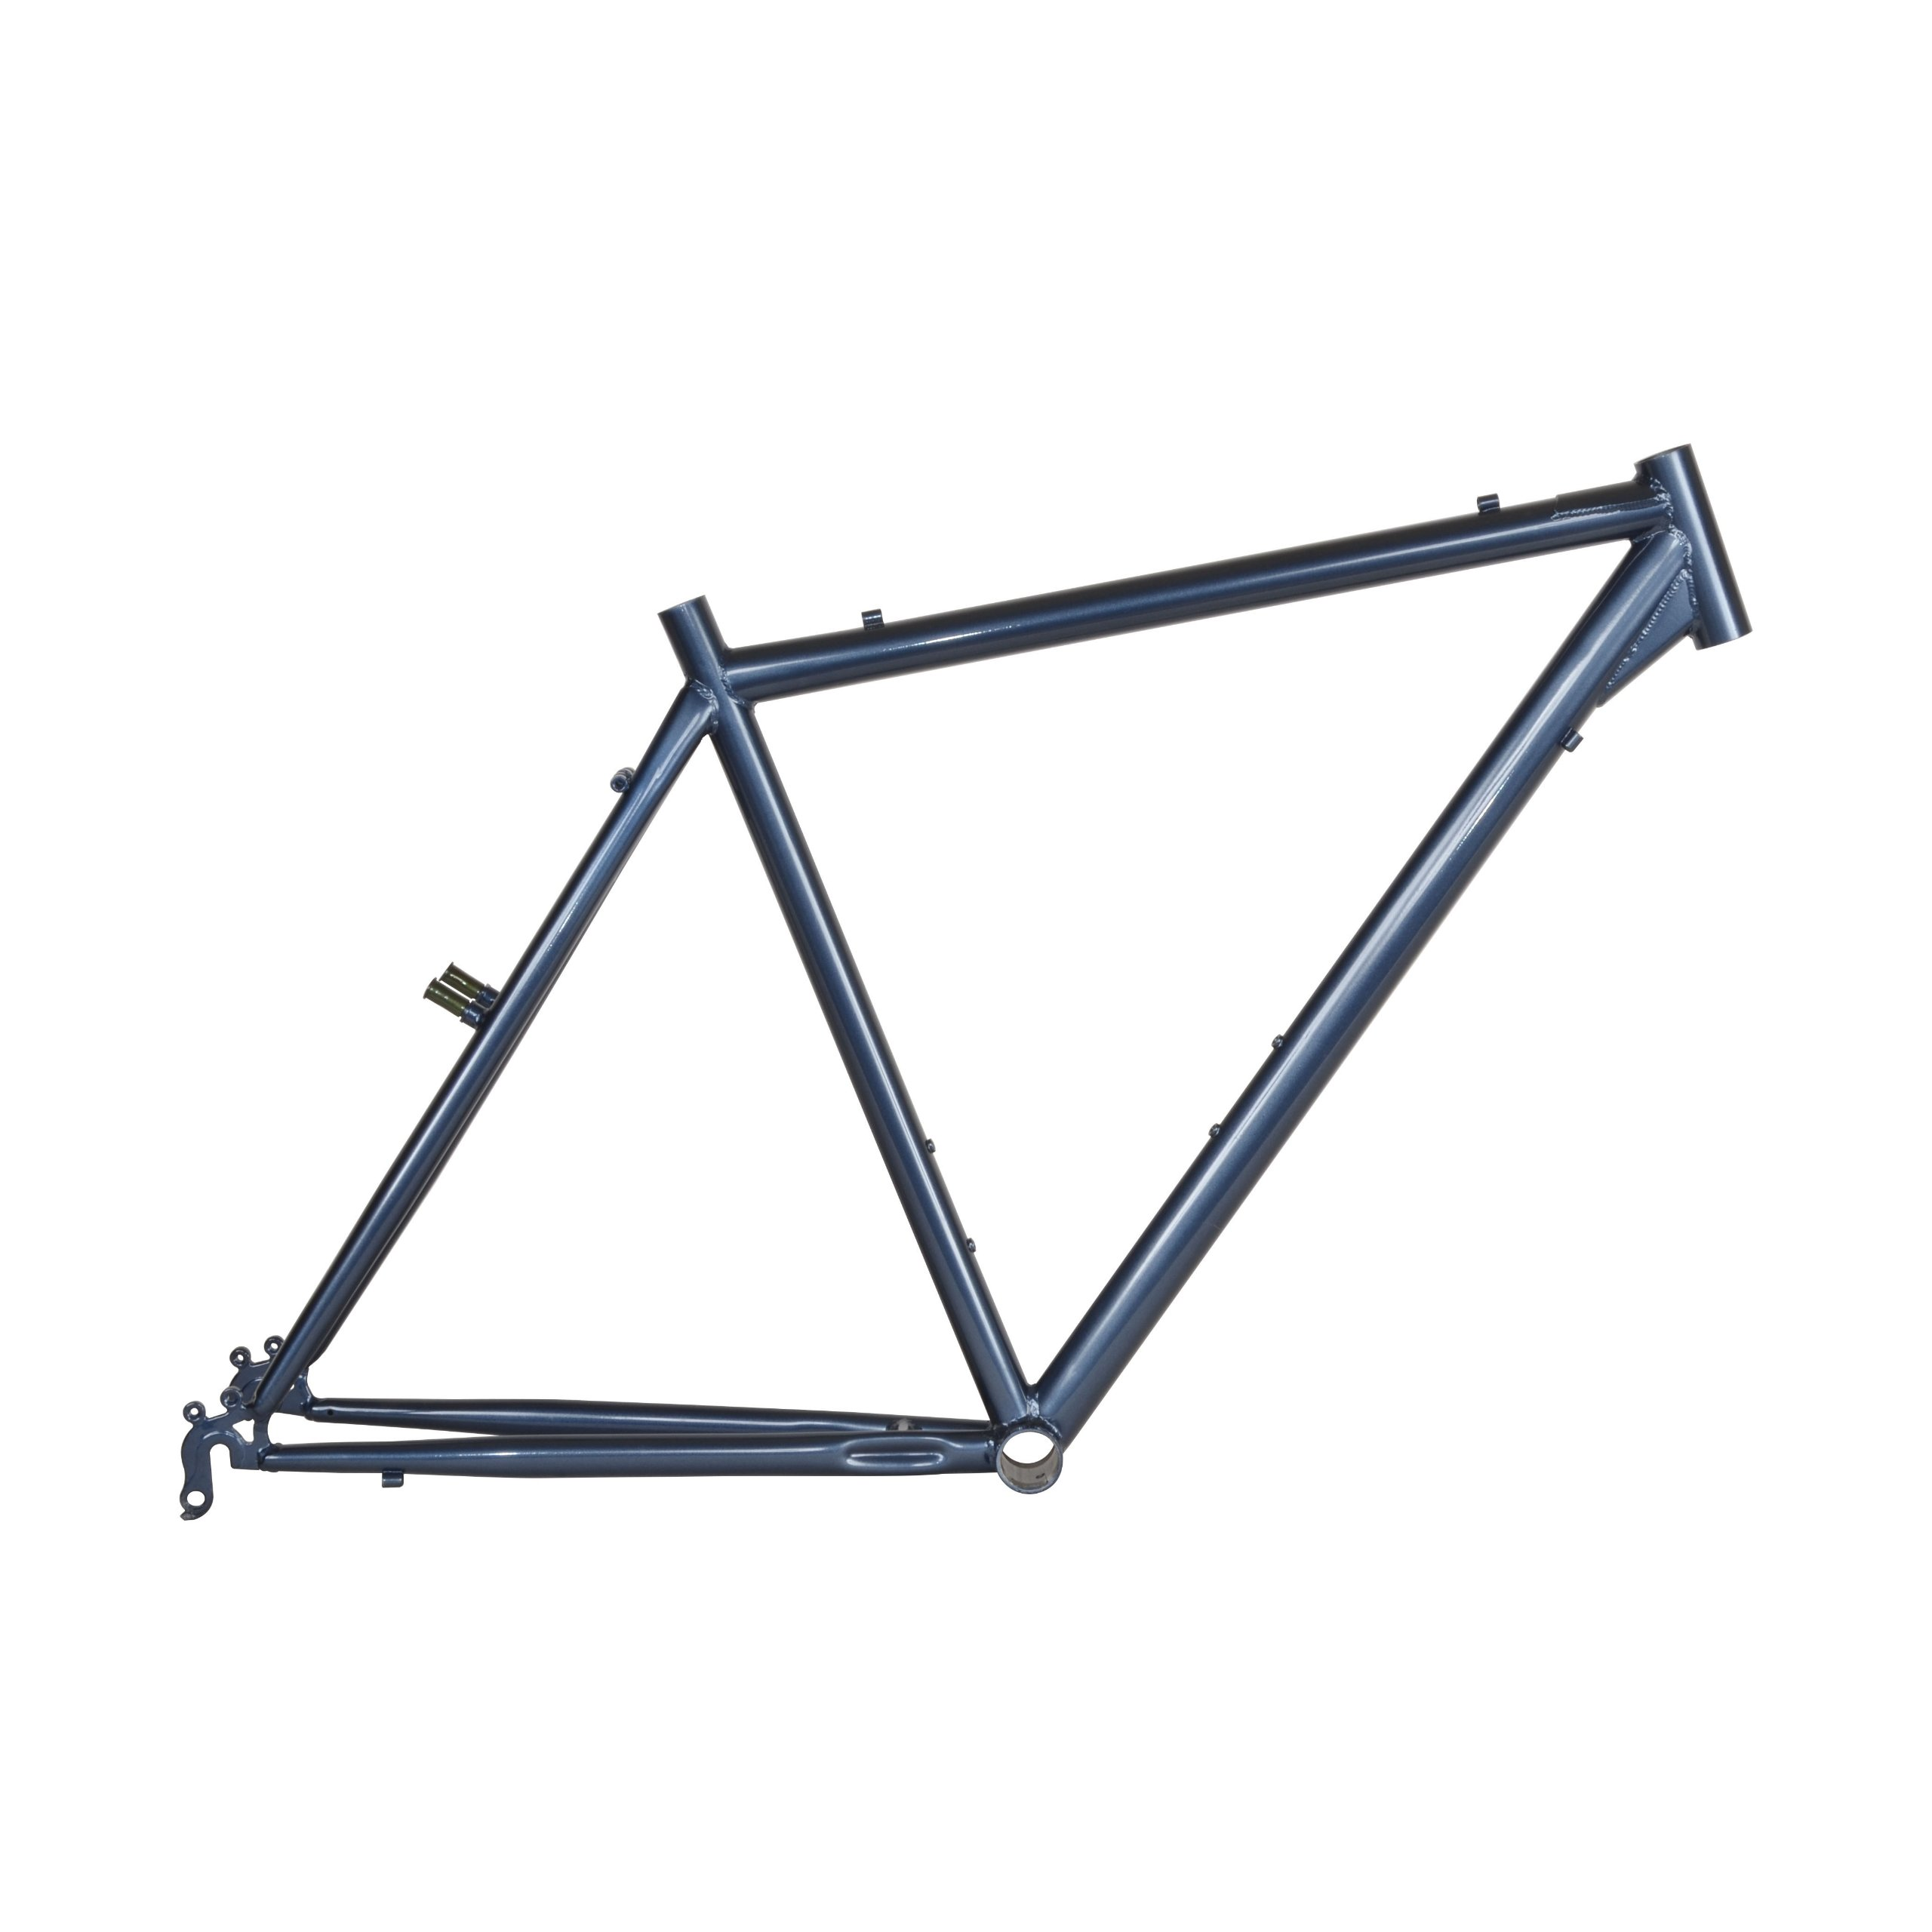 Cycle Force Cro-mo Touring Frame, 50cm/X-Small, Steel Blue